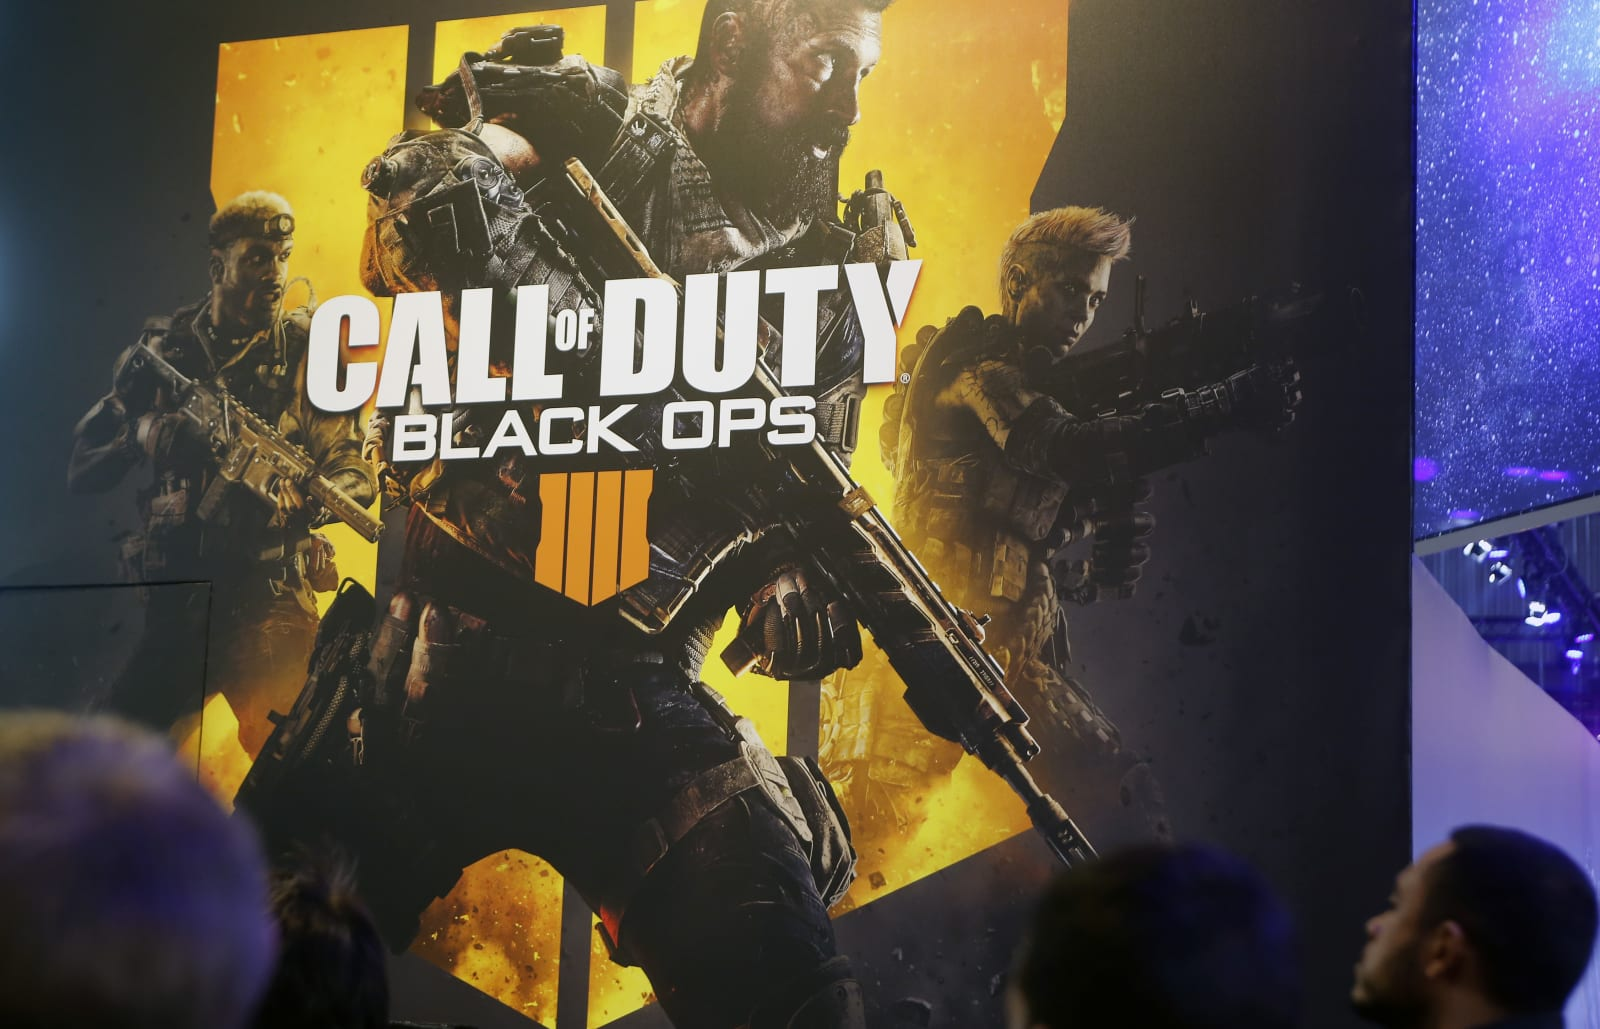 LA and Minnesota are getting 'Call of Duty' esports teams